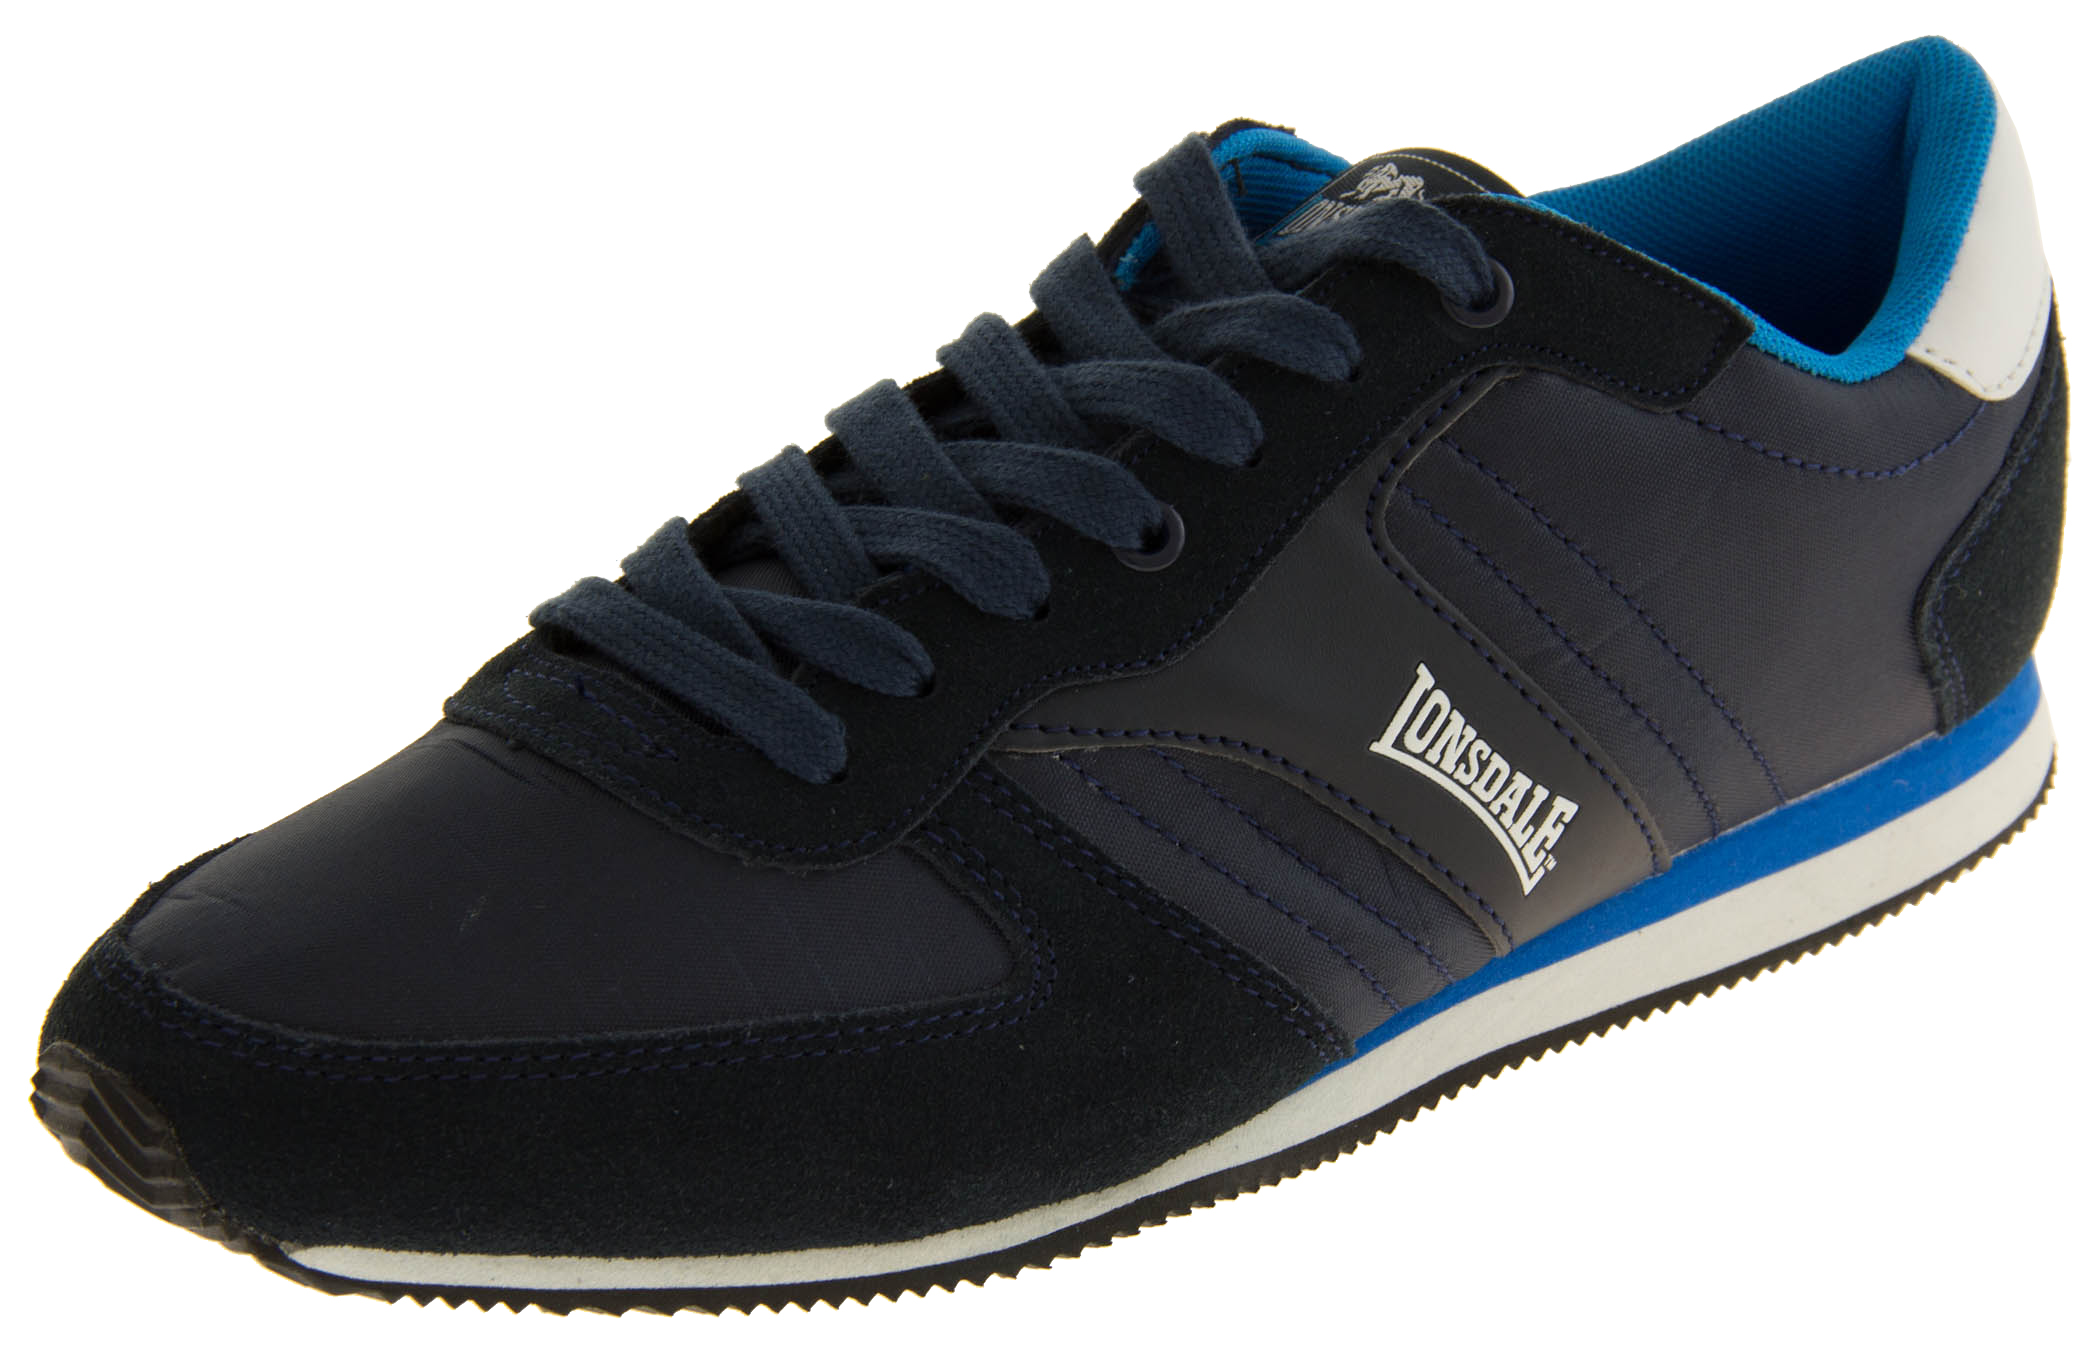 Mens Navy Blue LONSDALE Leather Trainers Lace Up Casual Sports Shoes Size 10 11